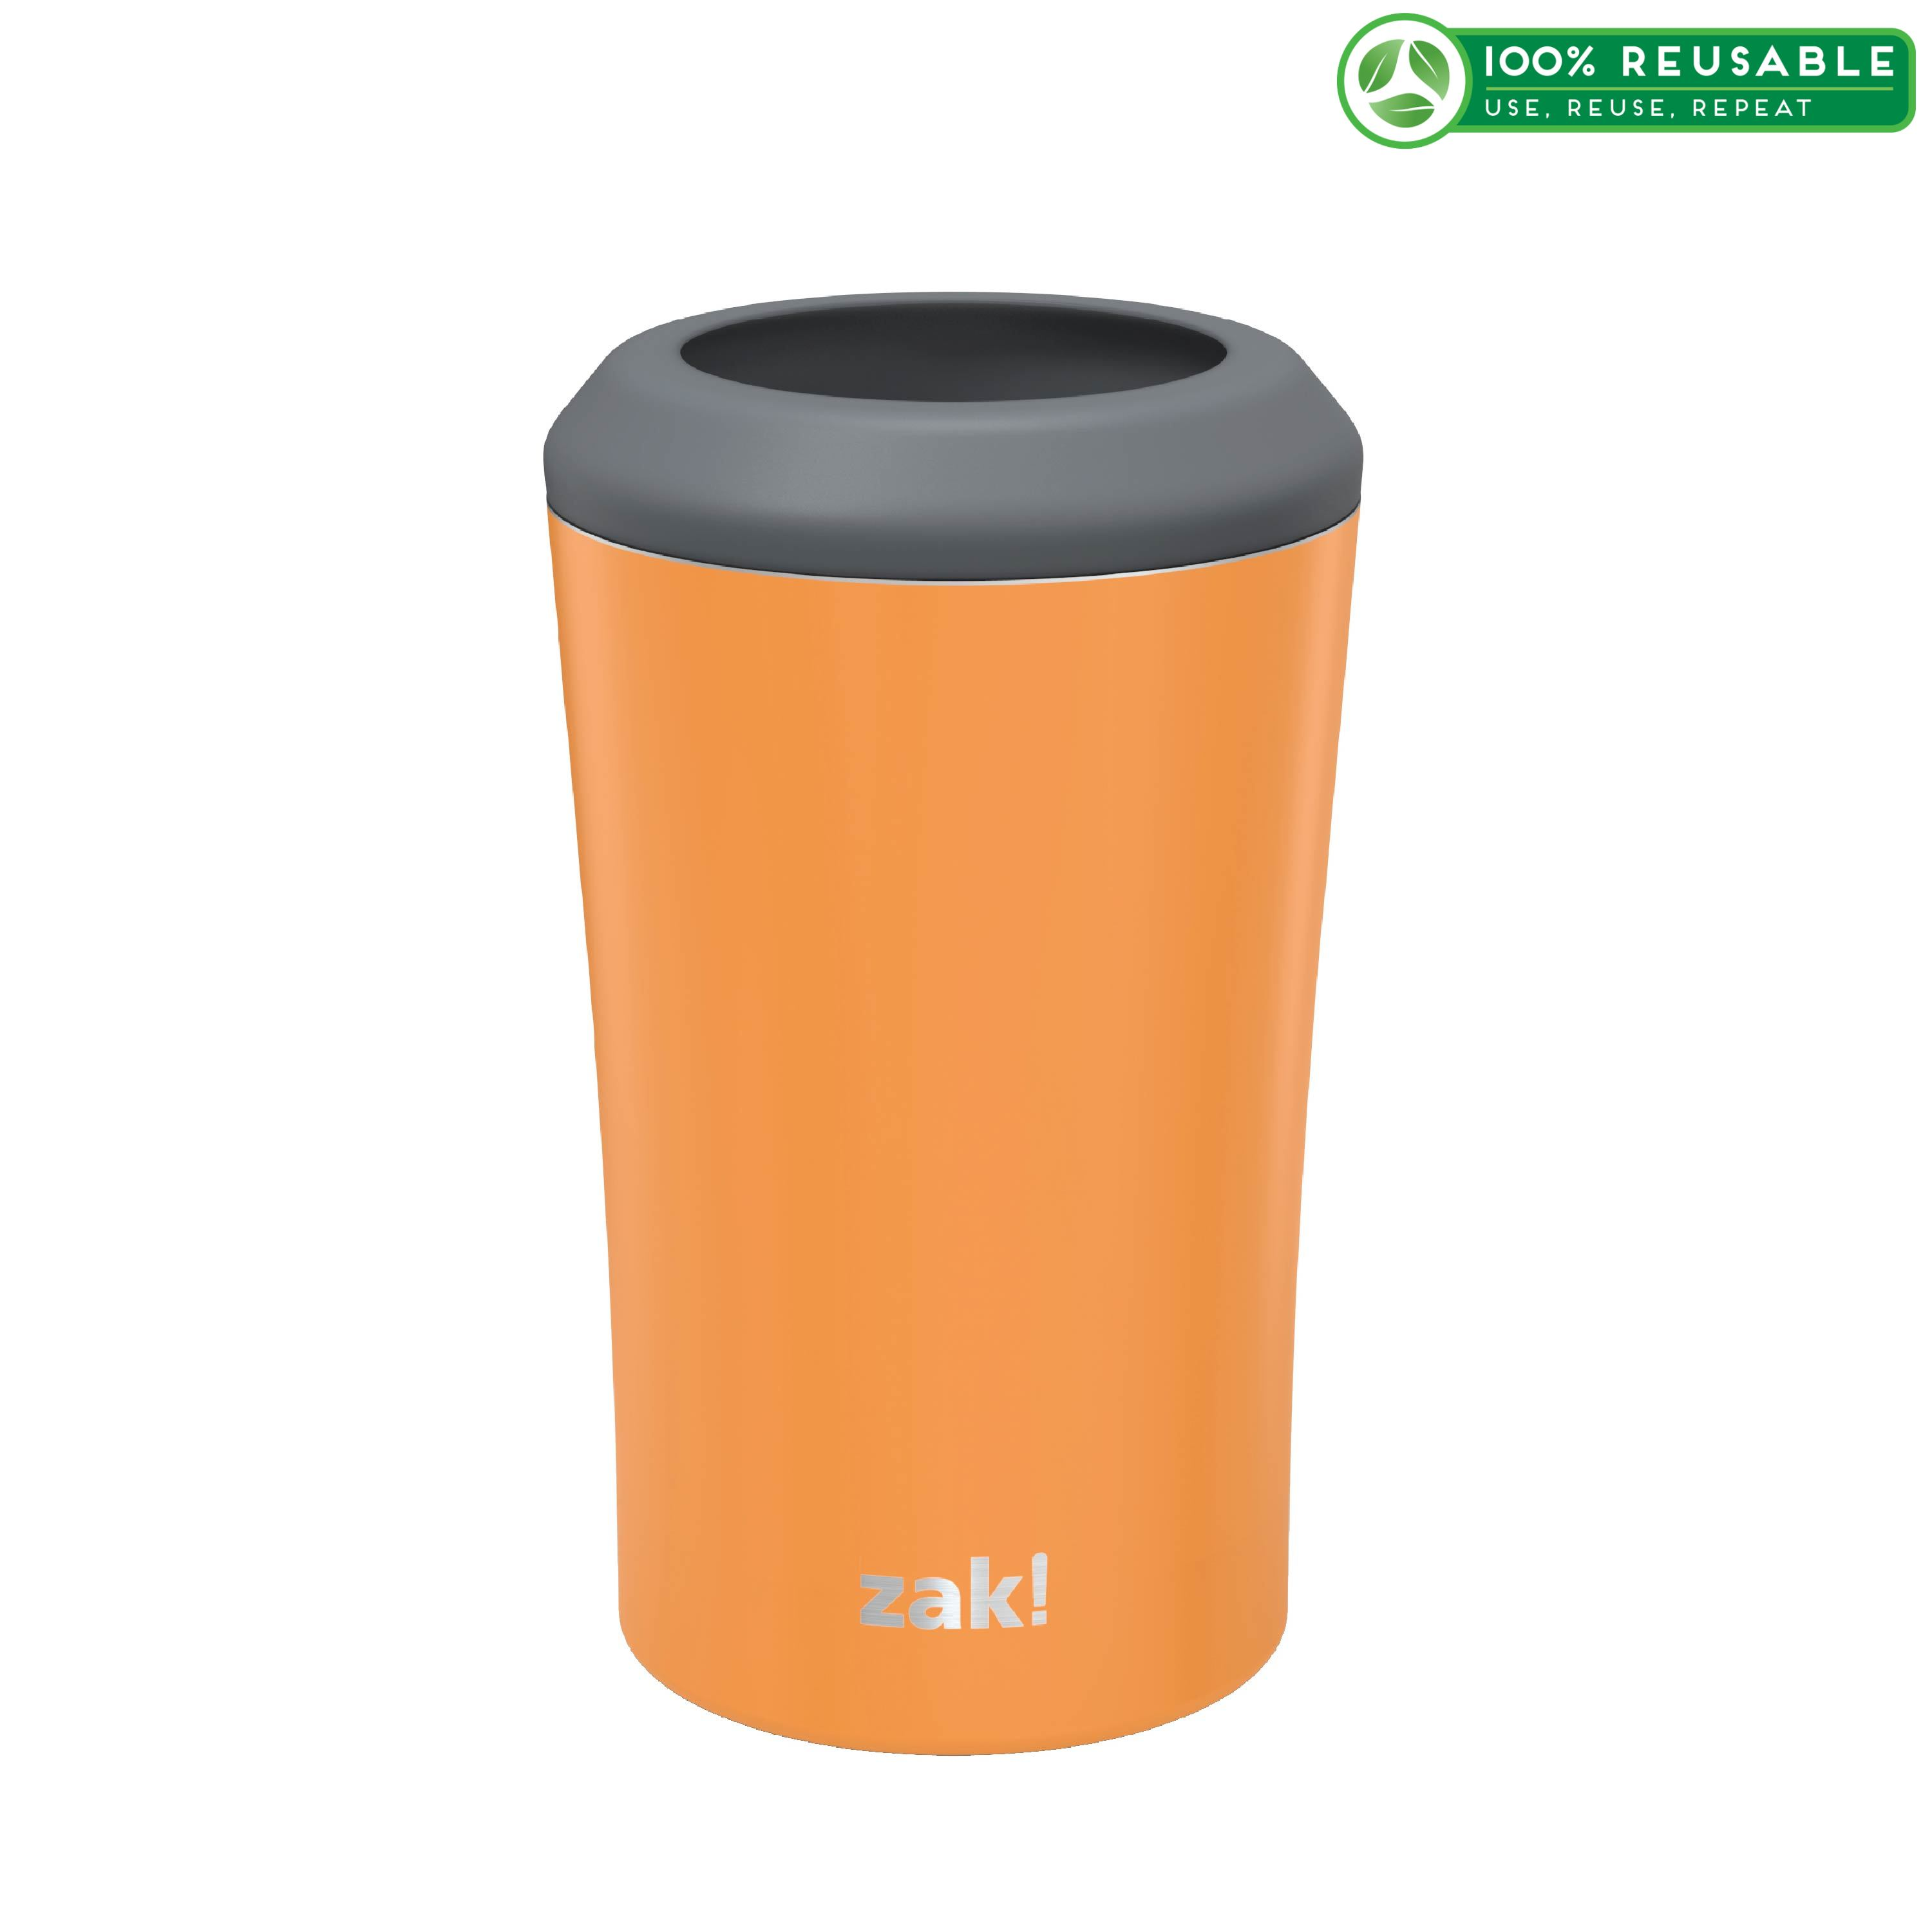 Zak Hydration 12 ounce Double Wall Stainless Steel Can and Bottle Cooler with Vacuum Insulation, Tangerine slideshow image 1